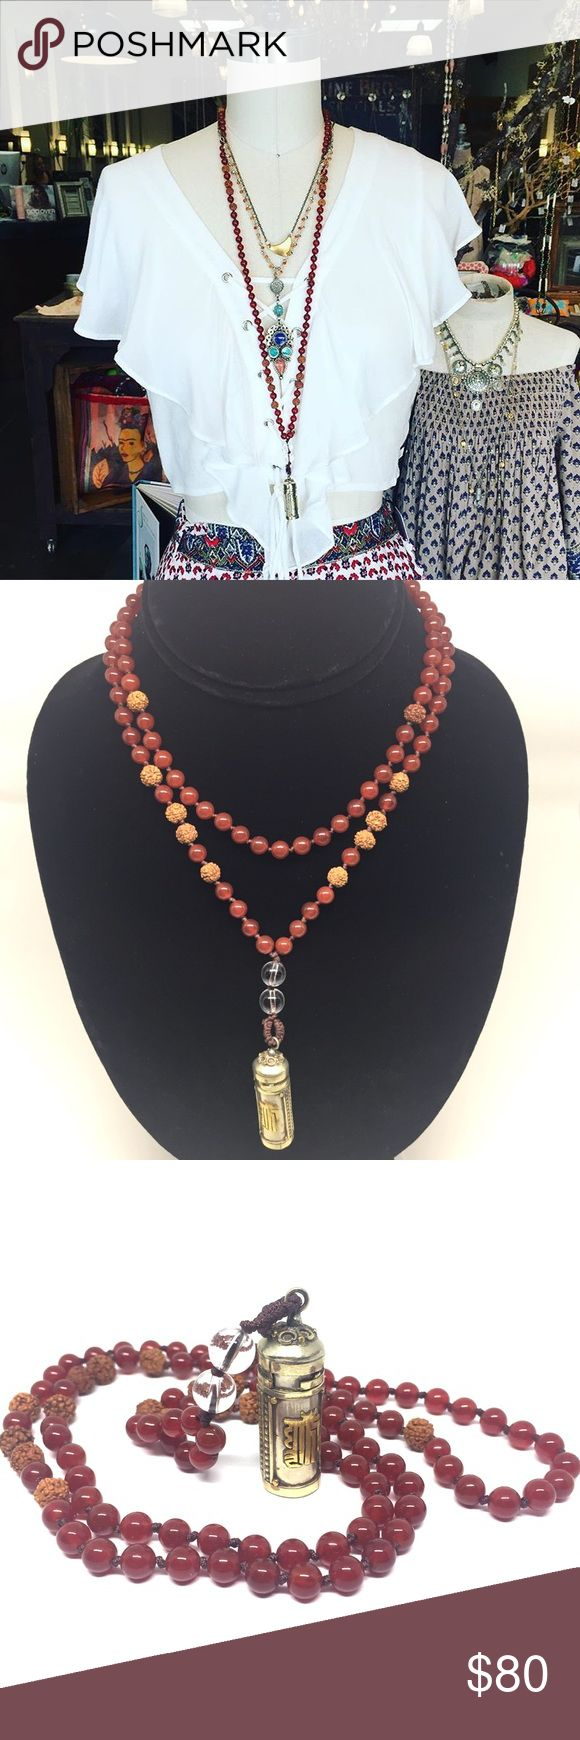 Action Mala Necklace Beautiful carnelian mala necklace with 108 genuine carnelian gemstones and Rudruksha seed beads. Necklace is complete with a Nepalian pendant that opens. One can place a handwritten mantra or intention inside for safekeeping. Necklace measures 28 inches around and beads are 6 mm. Jewelry Necklaces